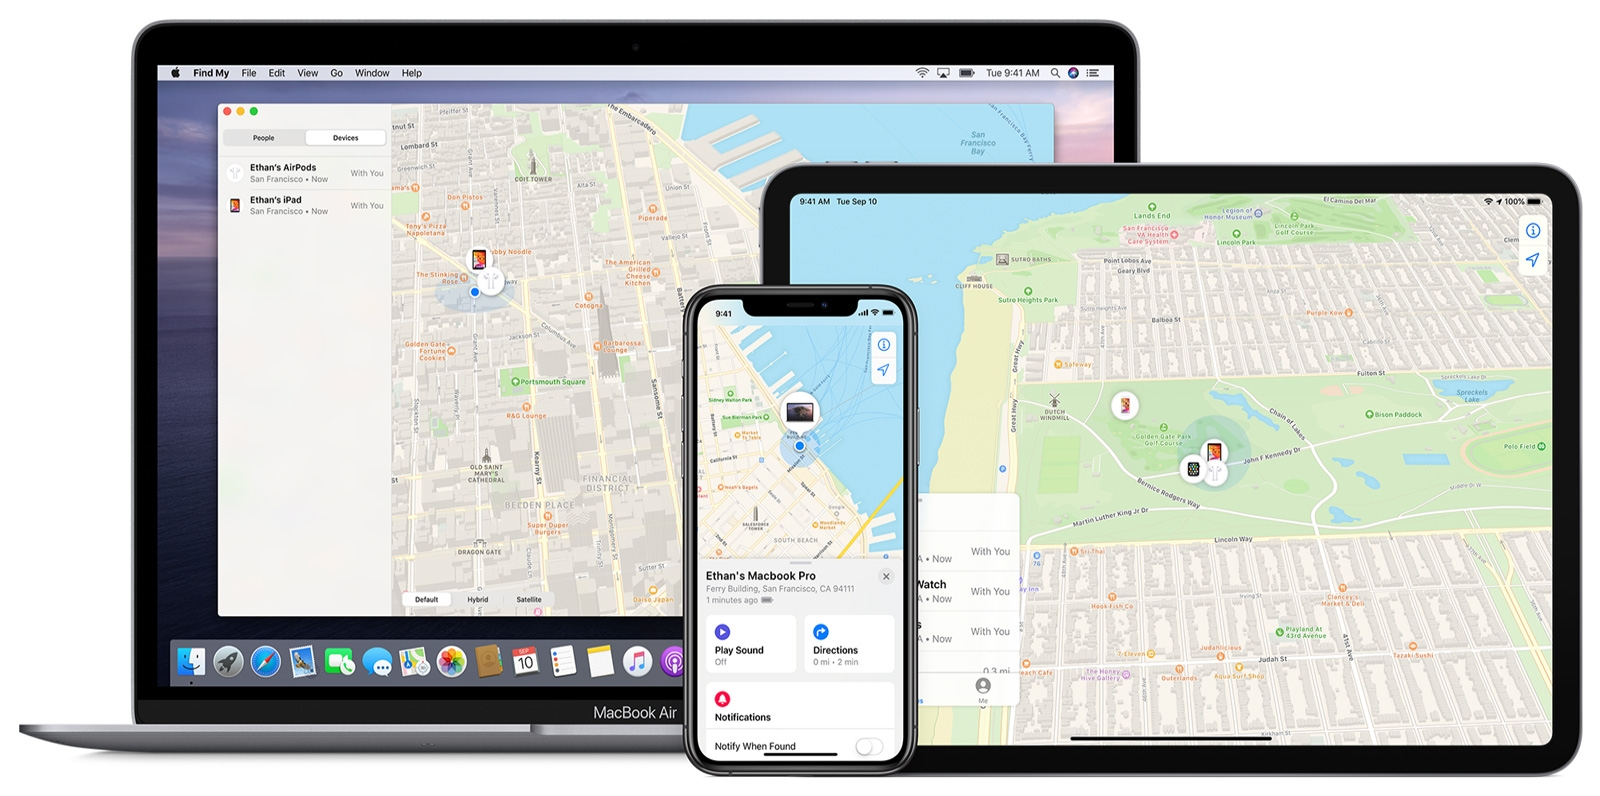 Find My tracking in iOS 14 will locate third-party devices | DeviceDaily.com